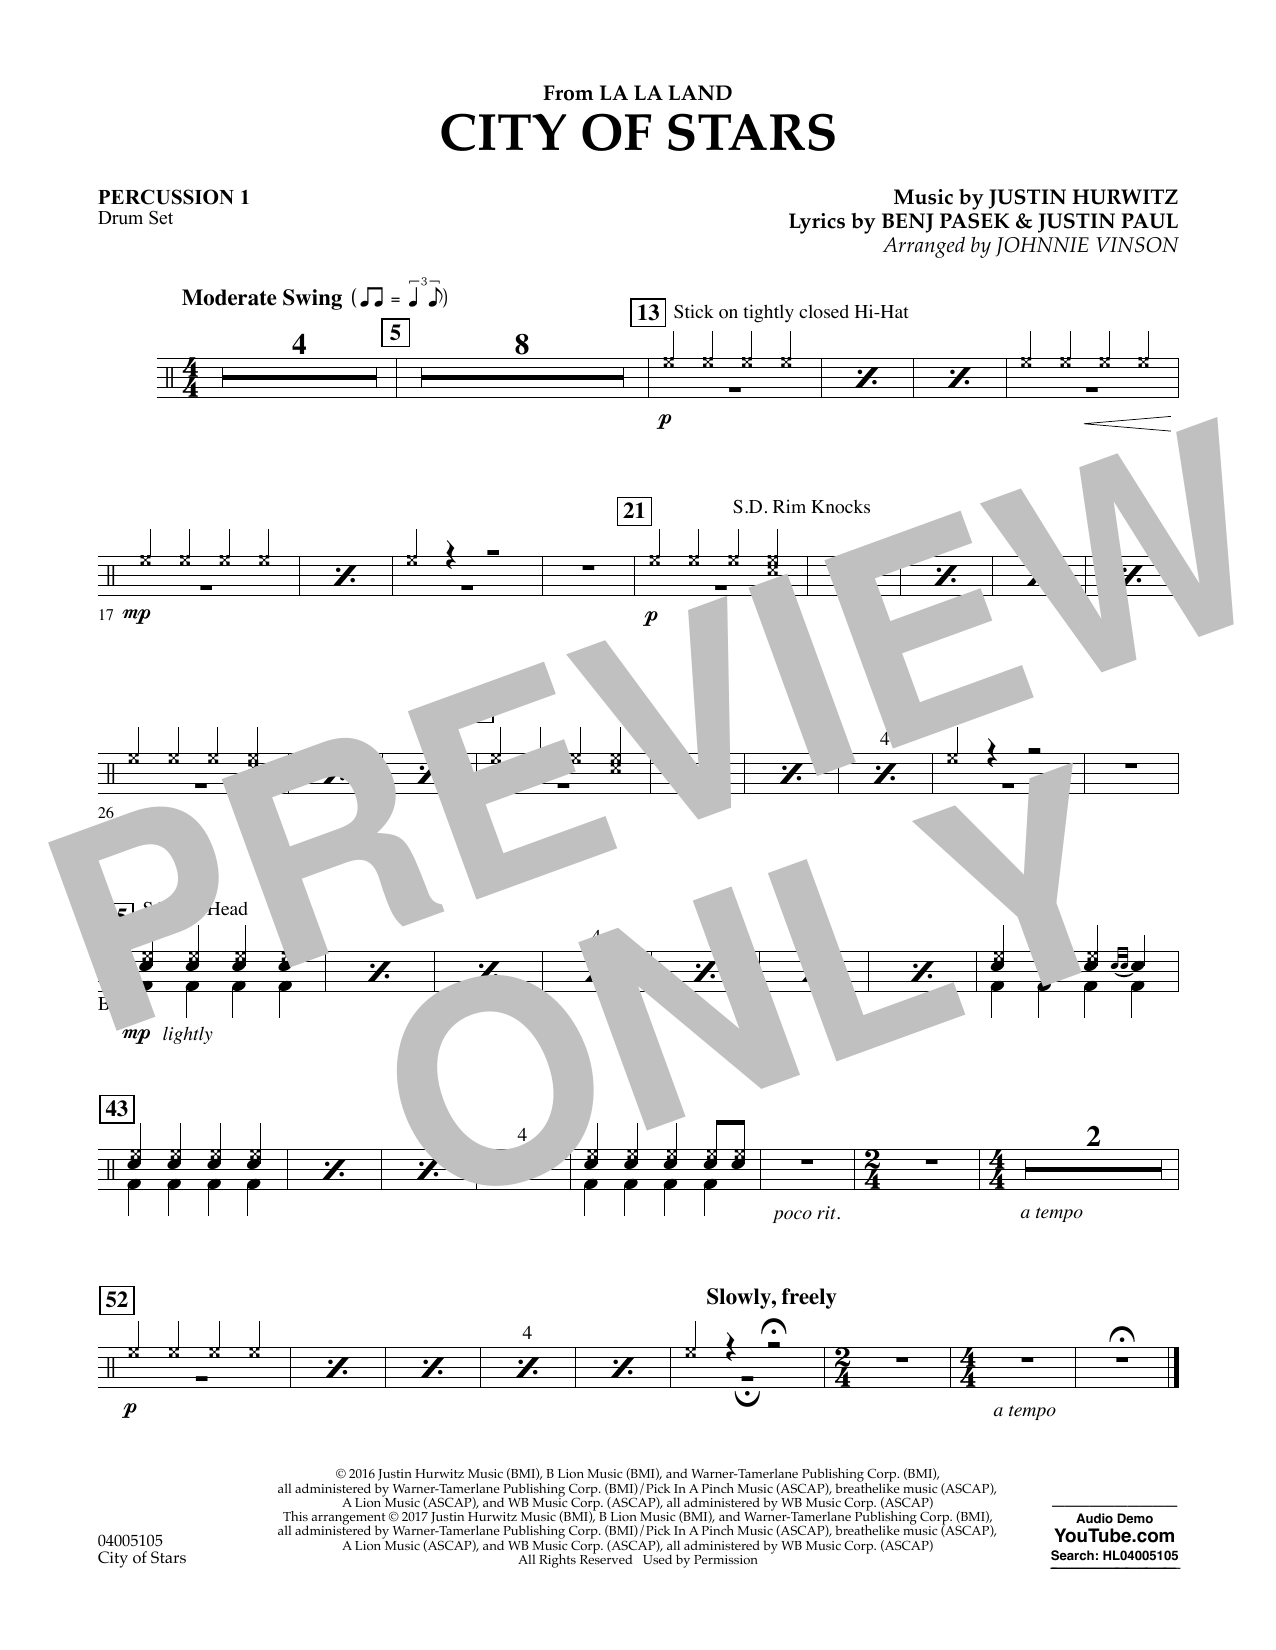 City of Stars (from La La Land) - Percussion 1 Sheet Music